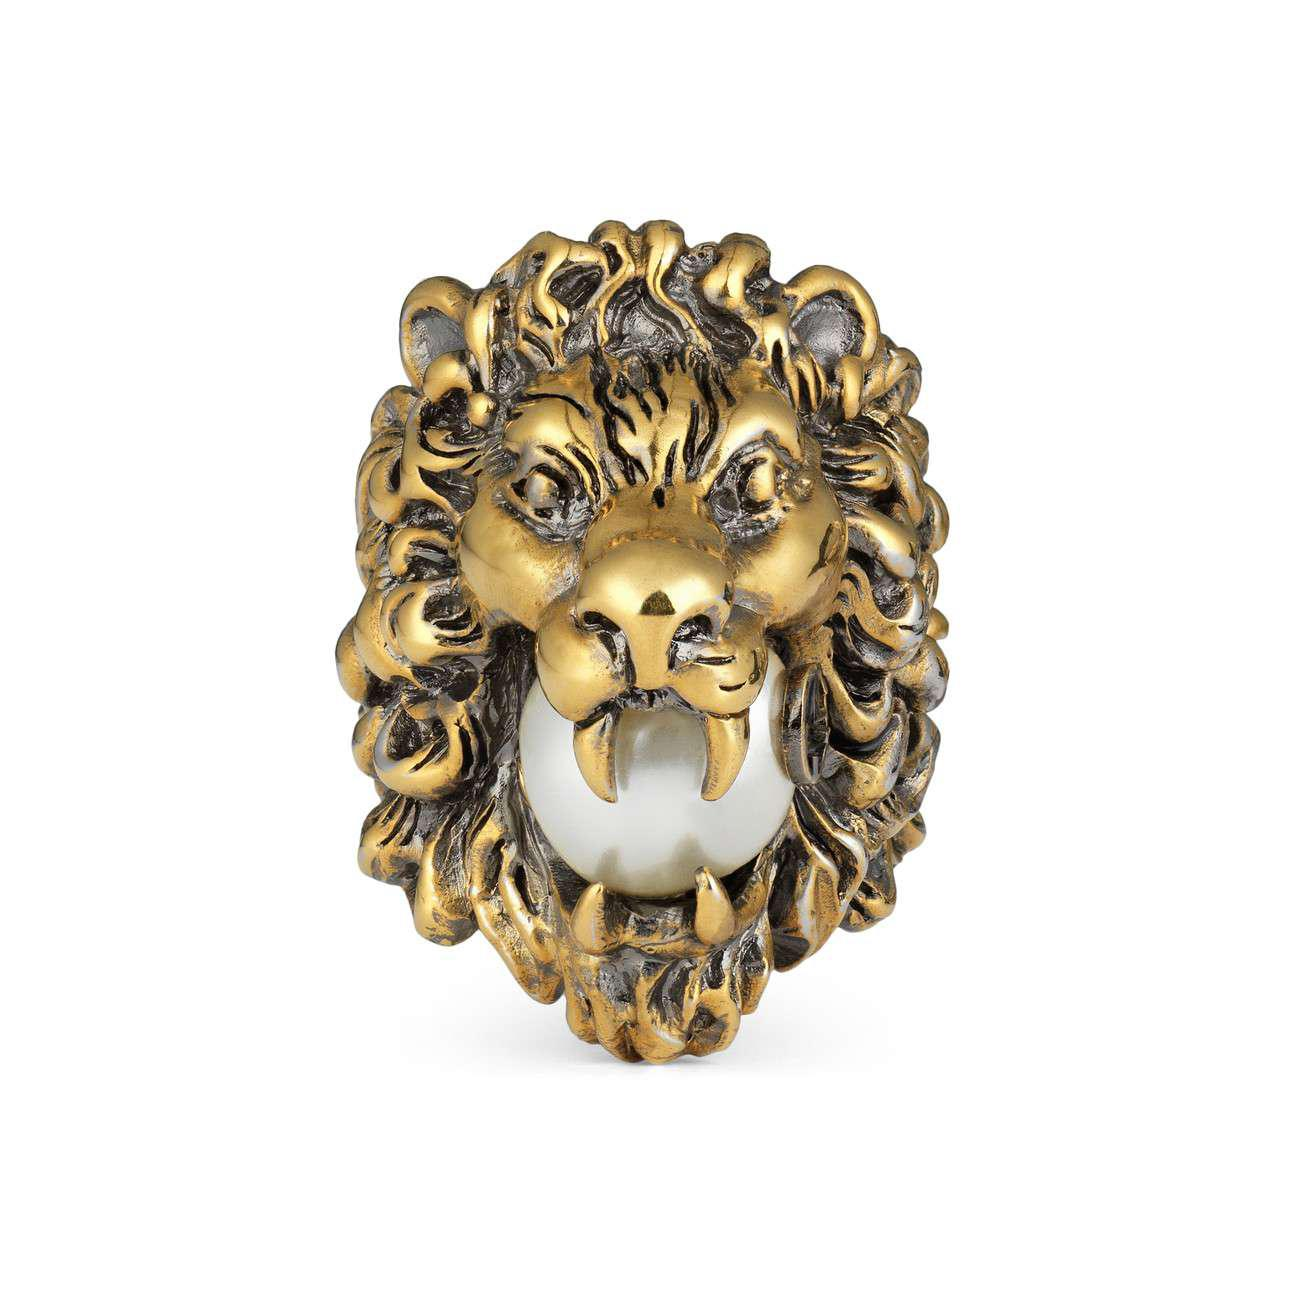 228cc31fcafa58 Lyst - Gucci Lion Head Ring With Glass Pearl in Metallic - Save 5%